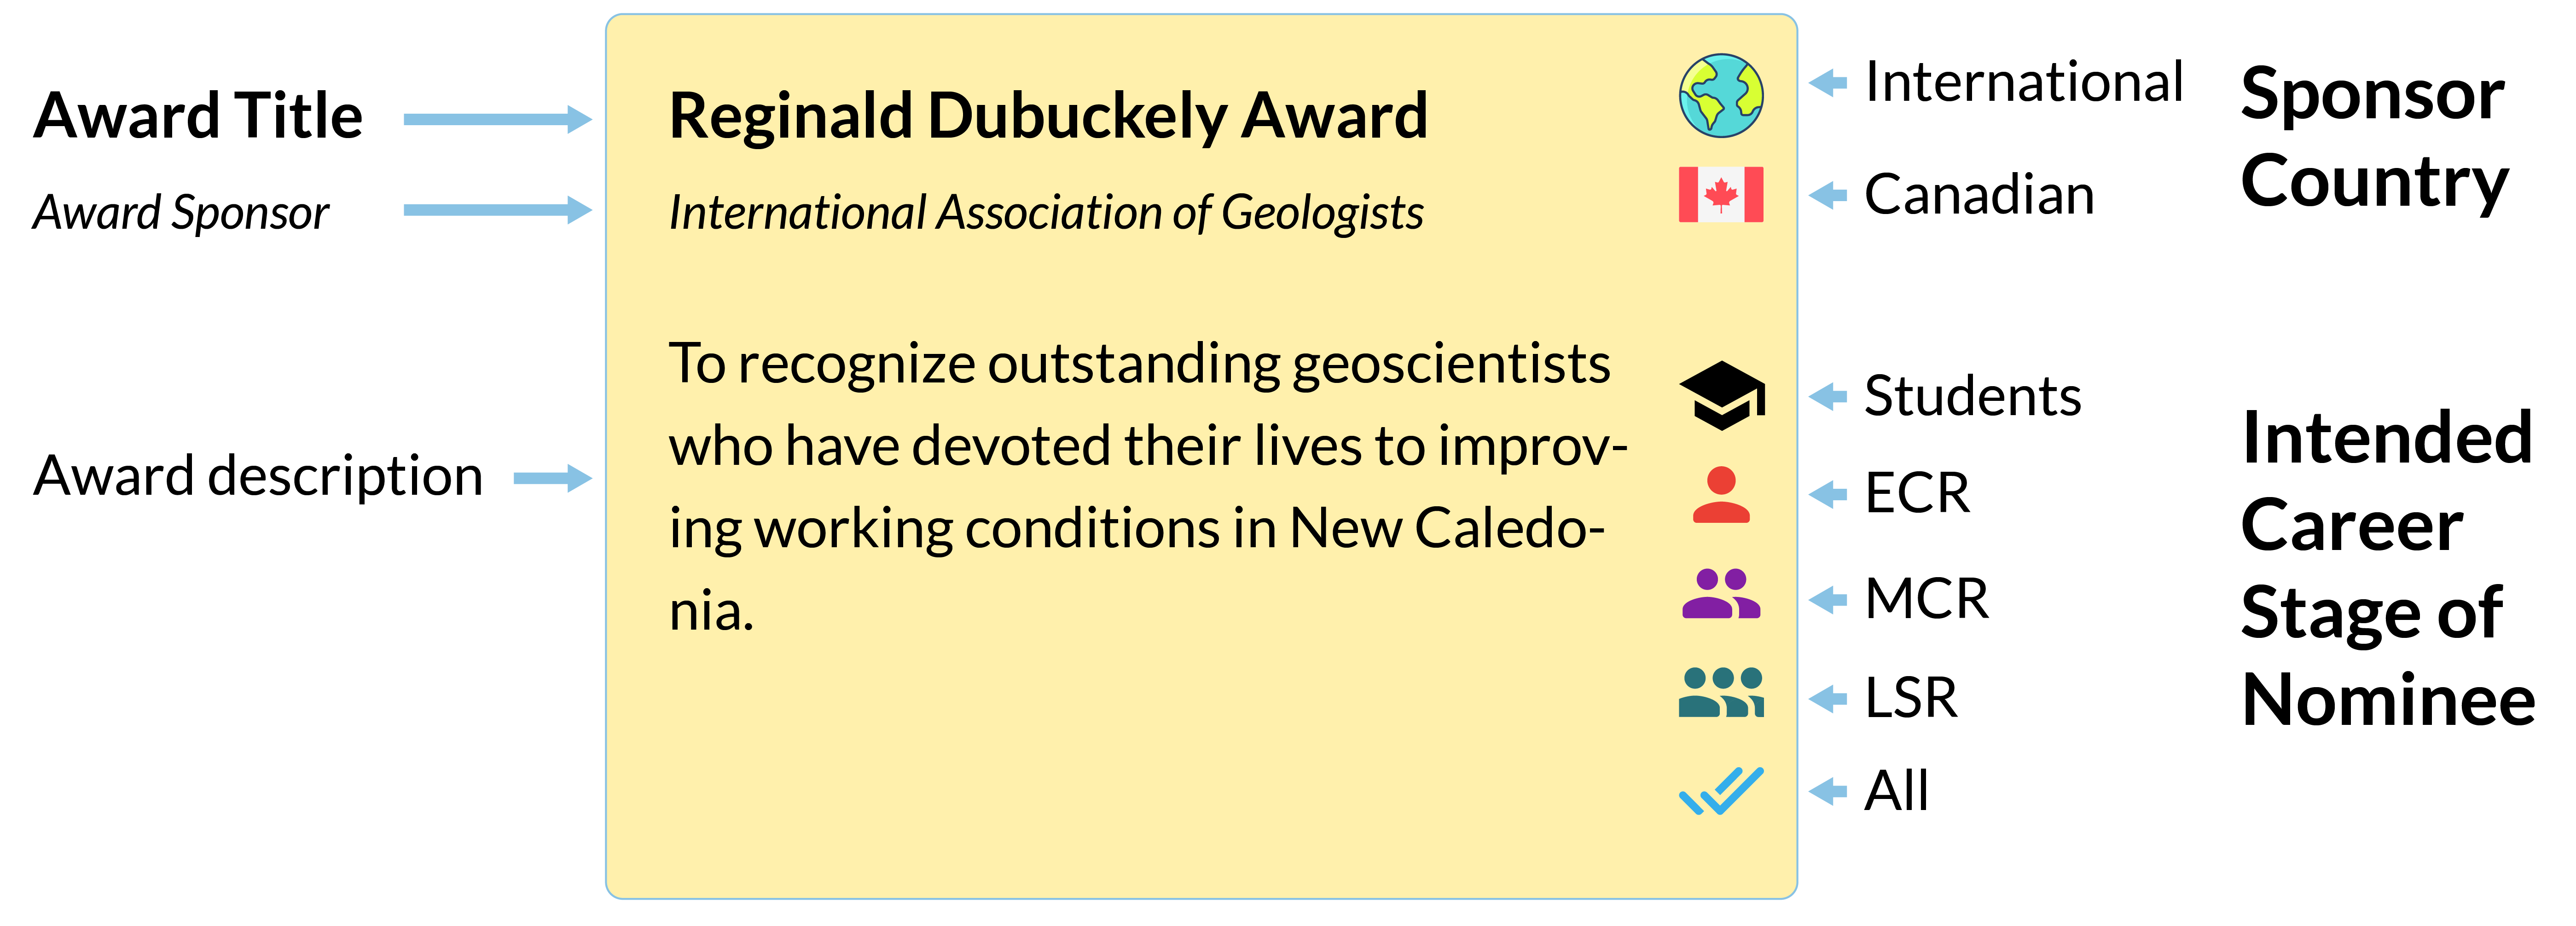 An image describing the components of an Earth Science Award